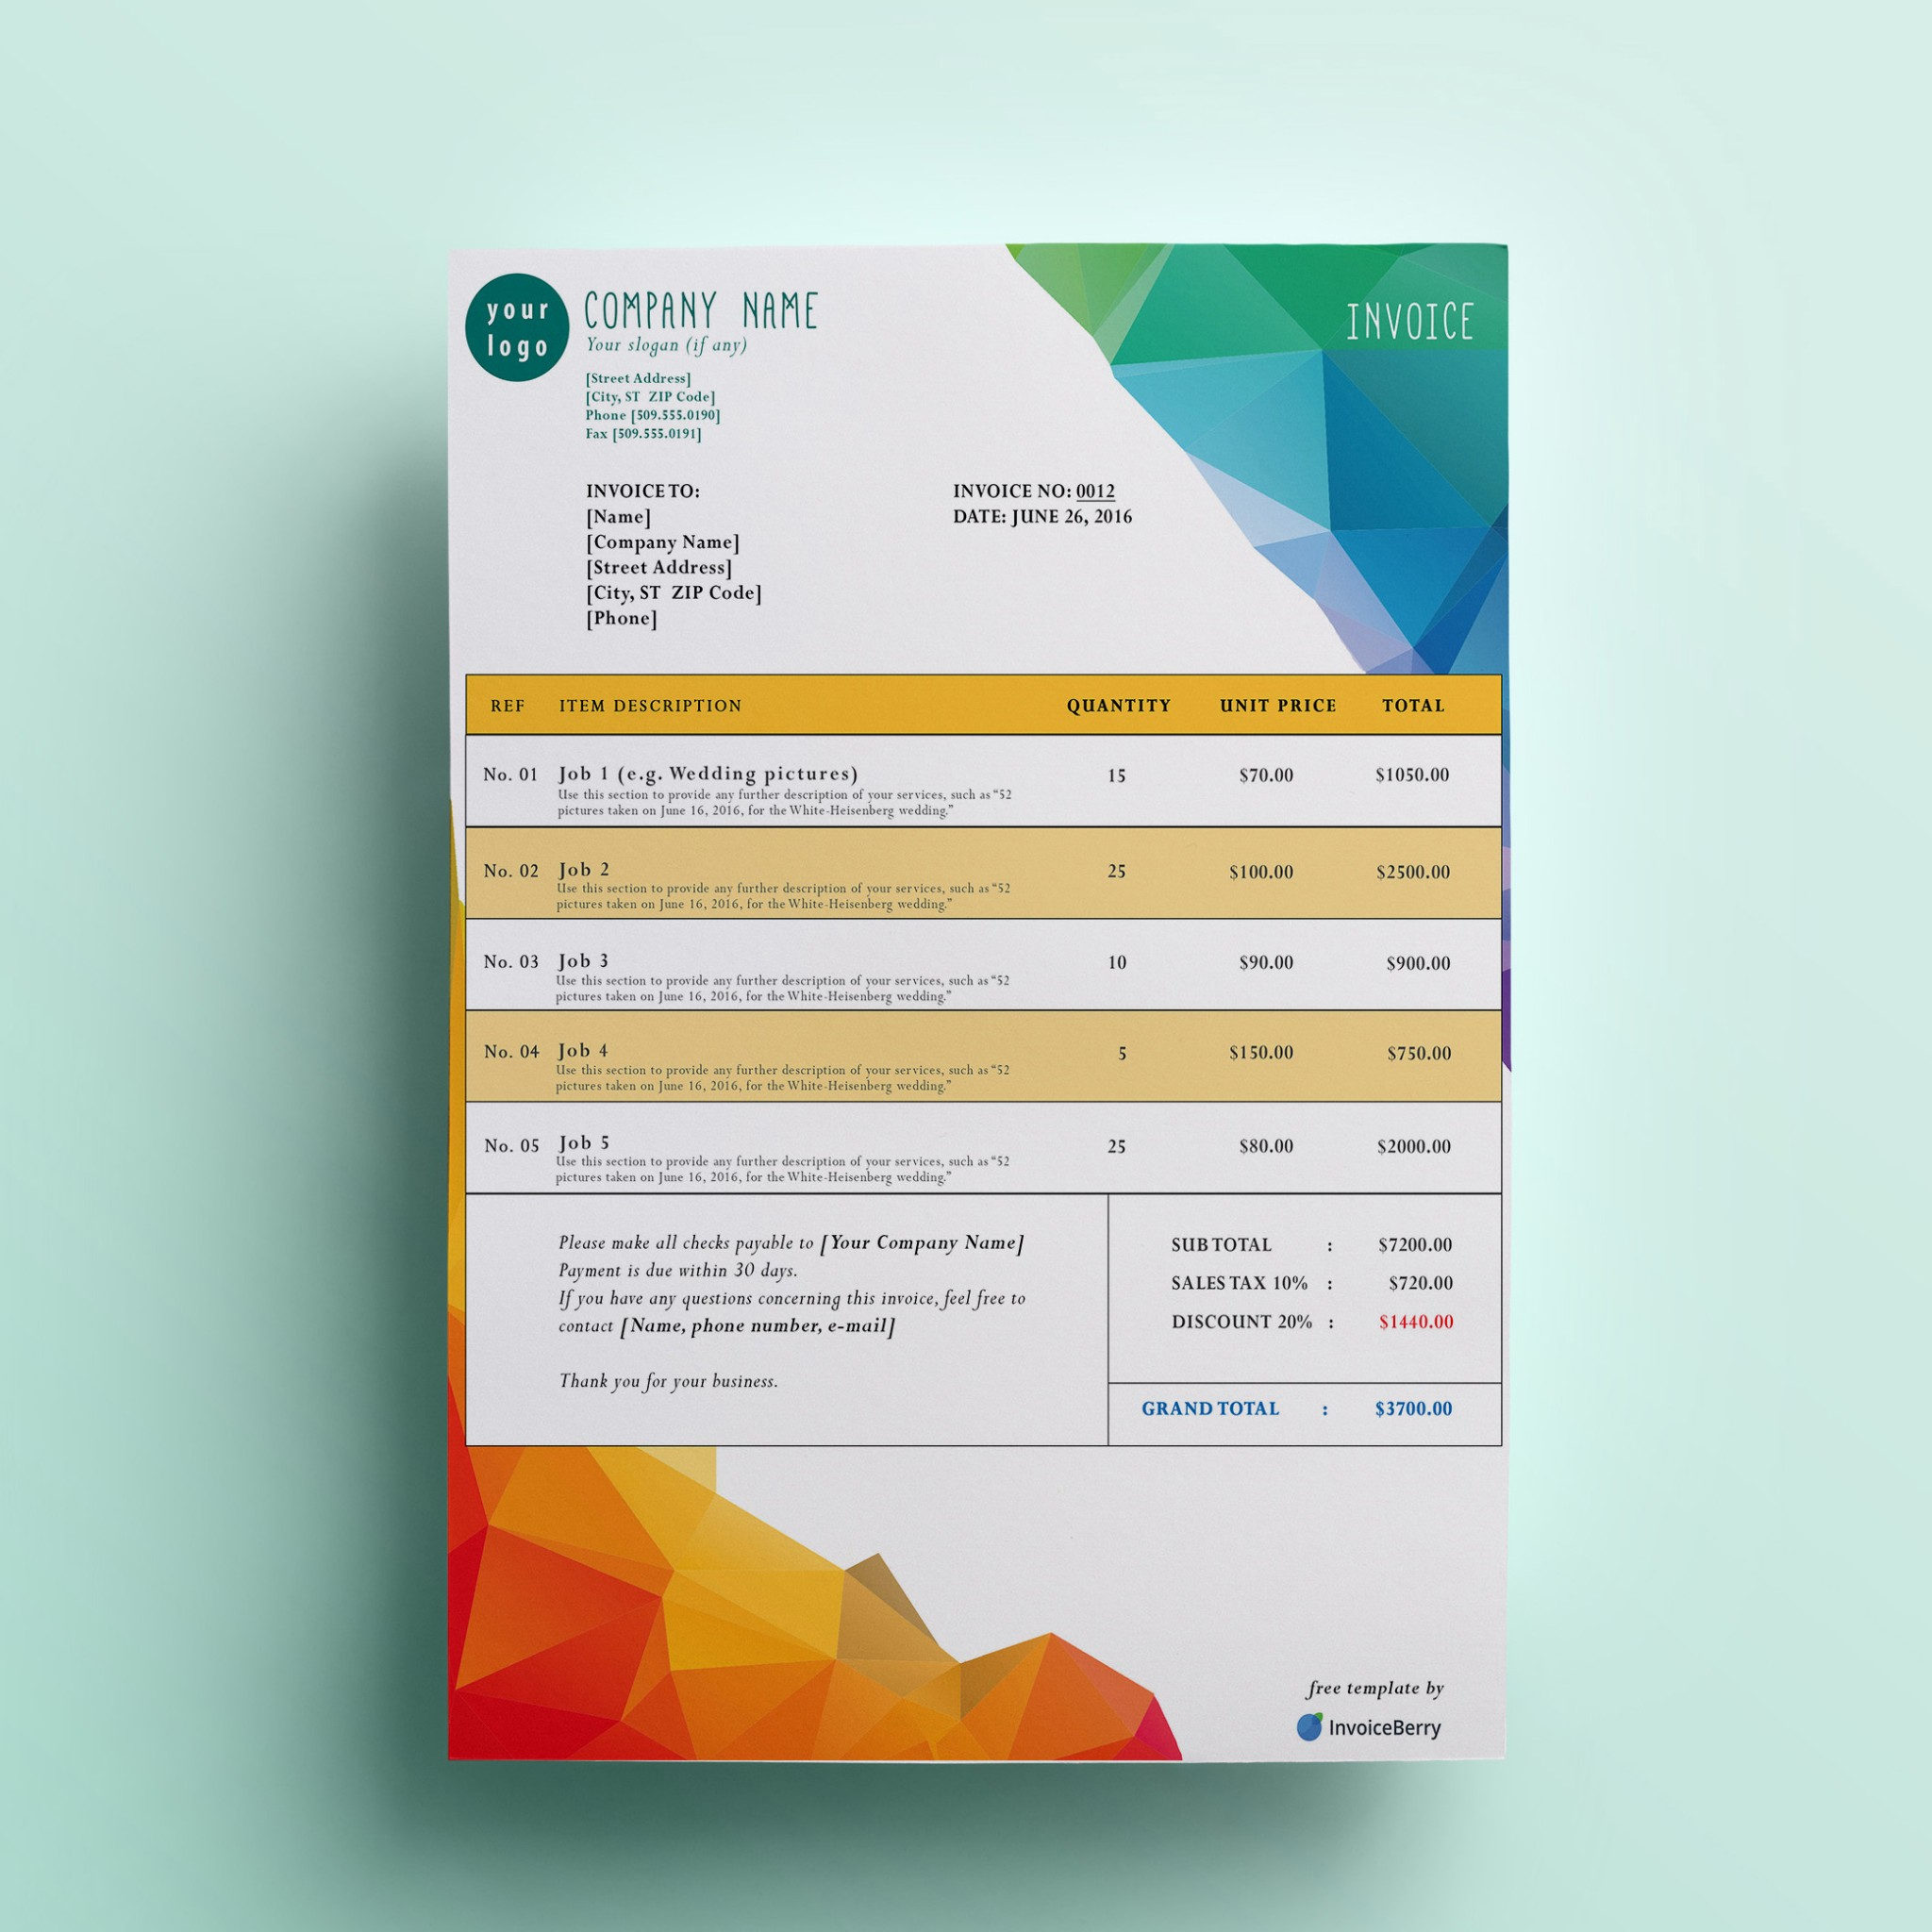 Free Invoice Templates By InvoiceBerry The Grid System - Online free invoice templates